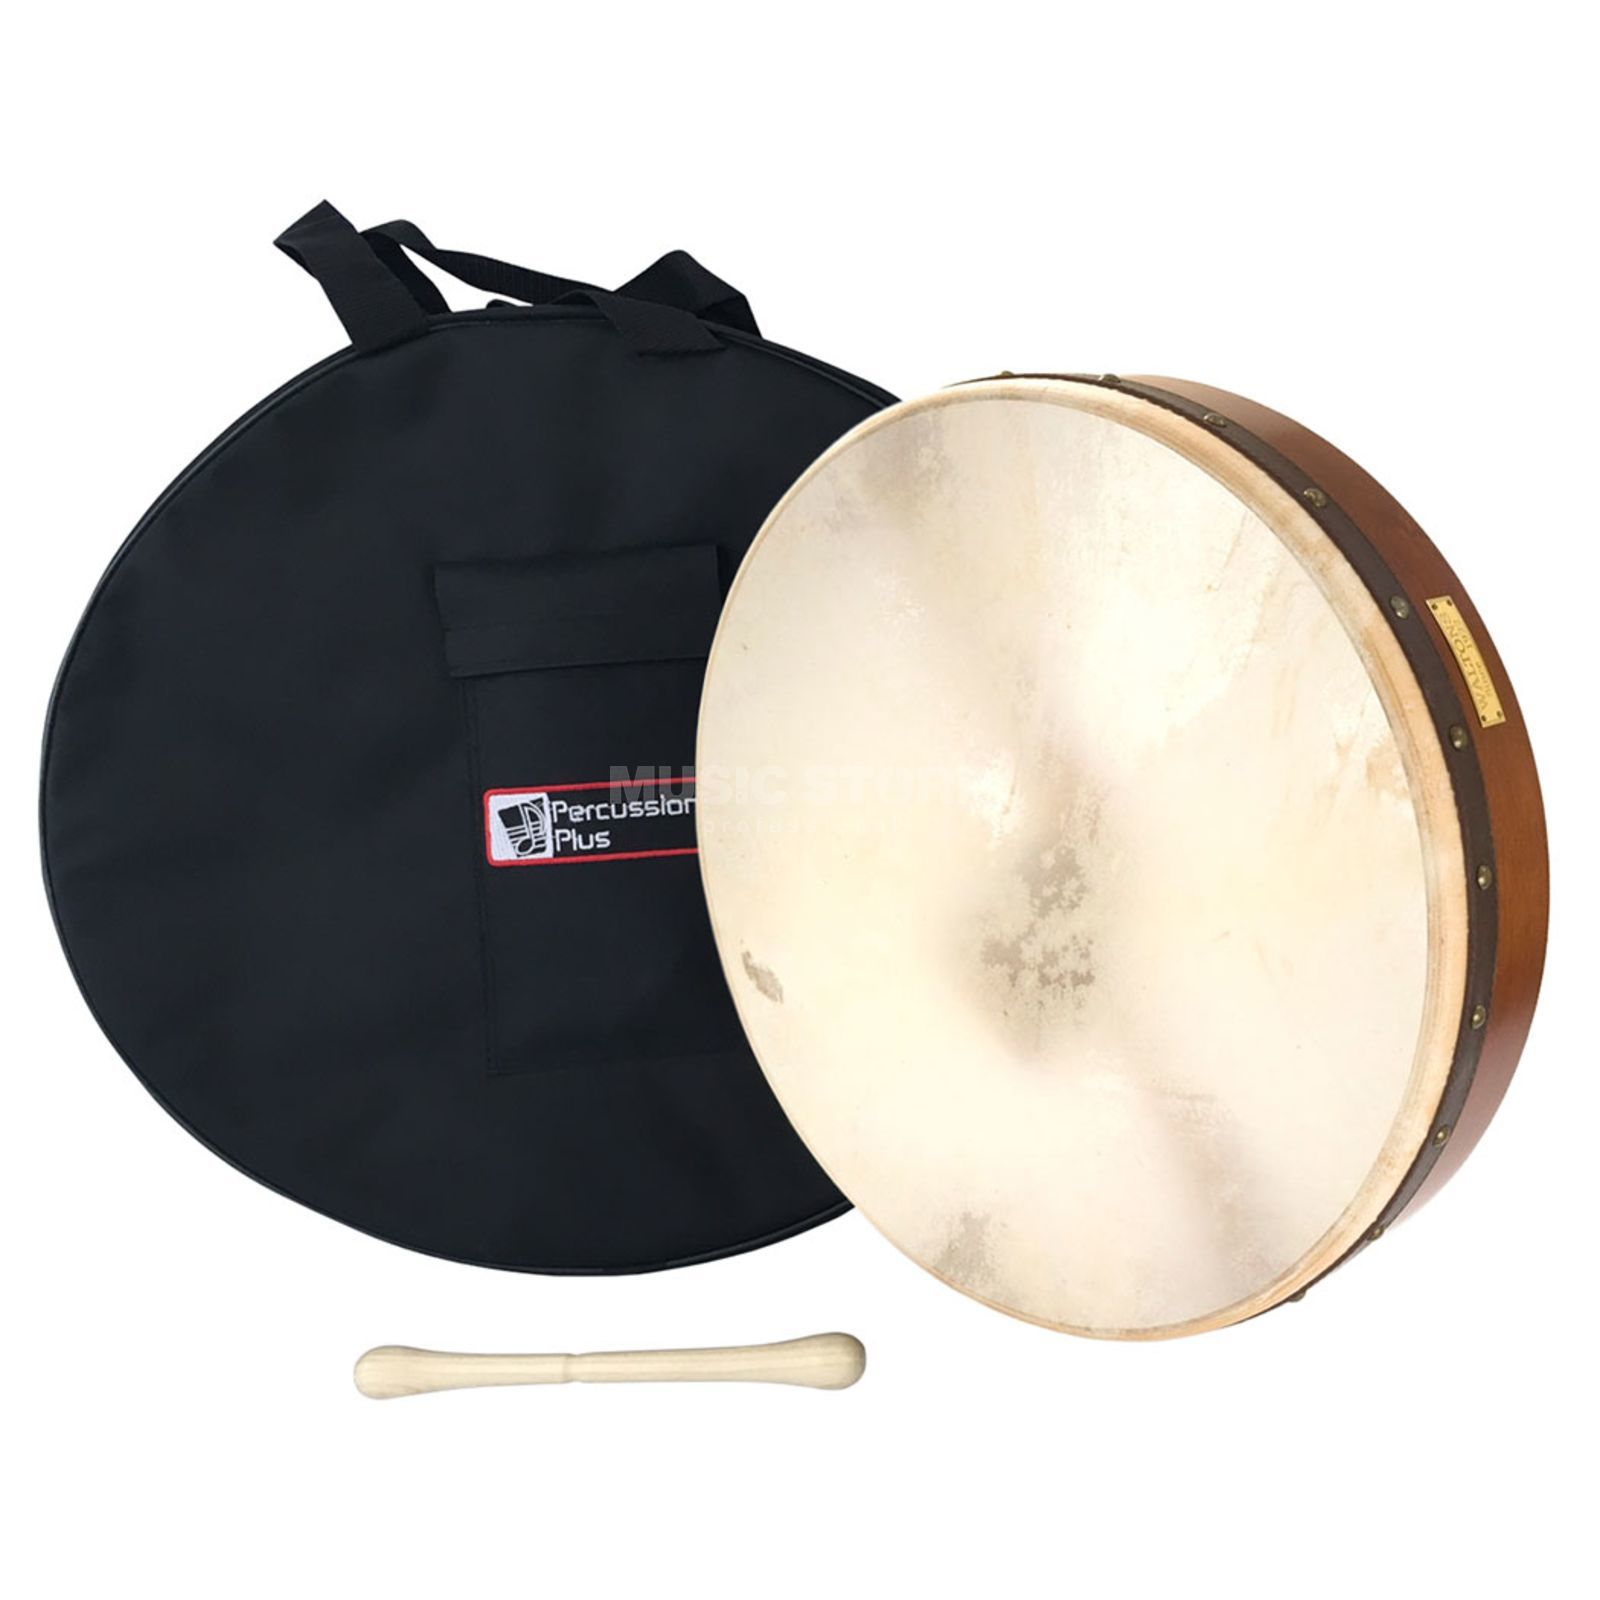 "Percussion Plus PP1112 Bodhran 18"" plain, incl.  Beater, bag, book Produktbillede"